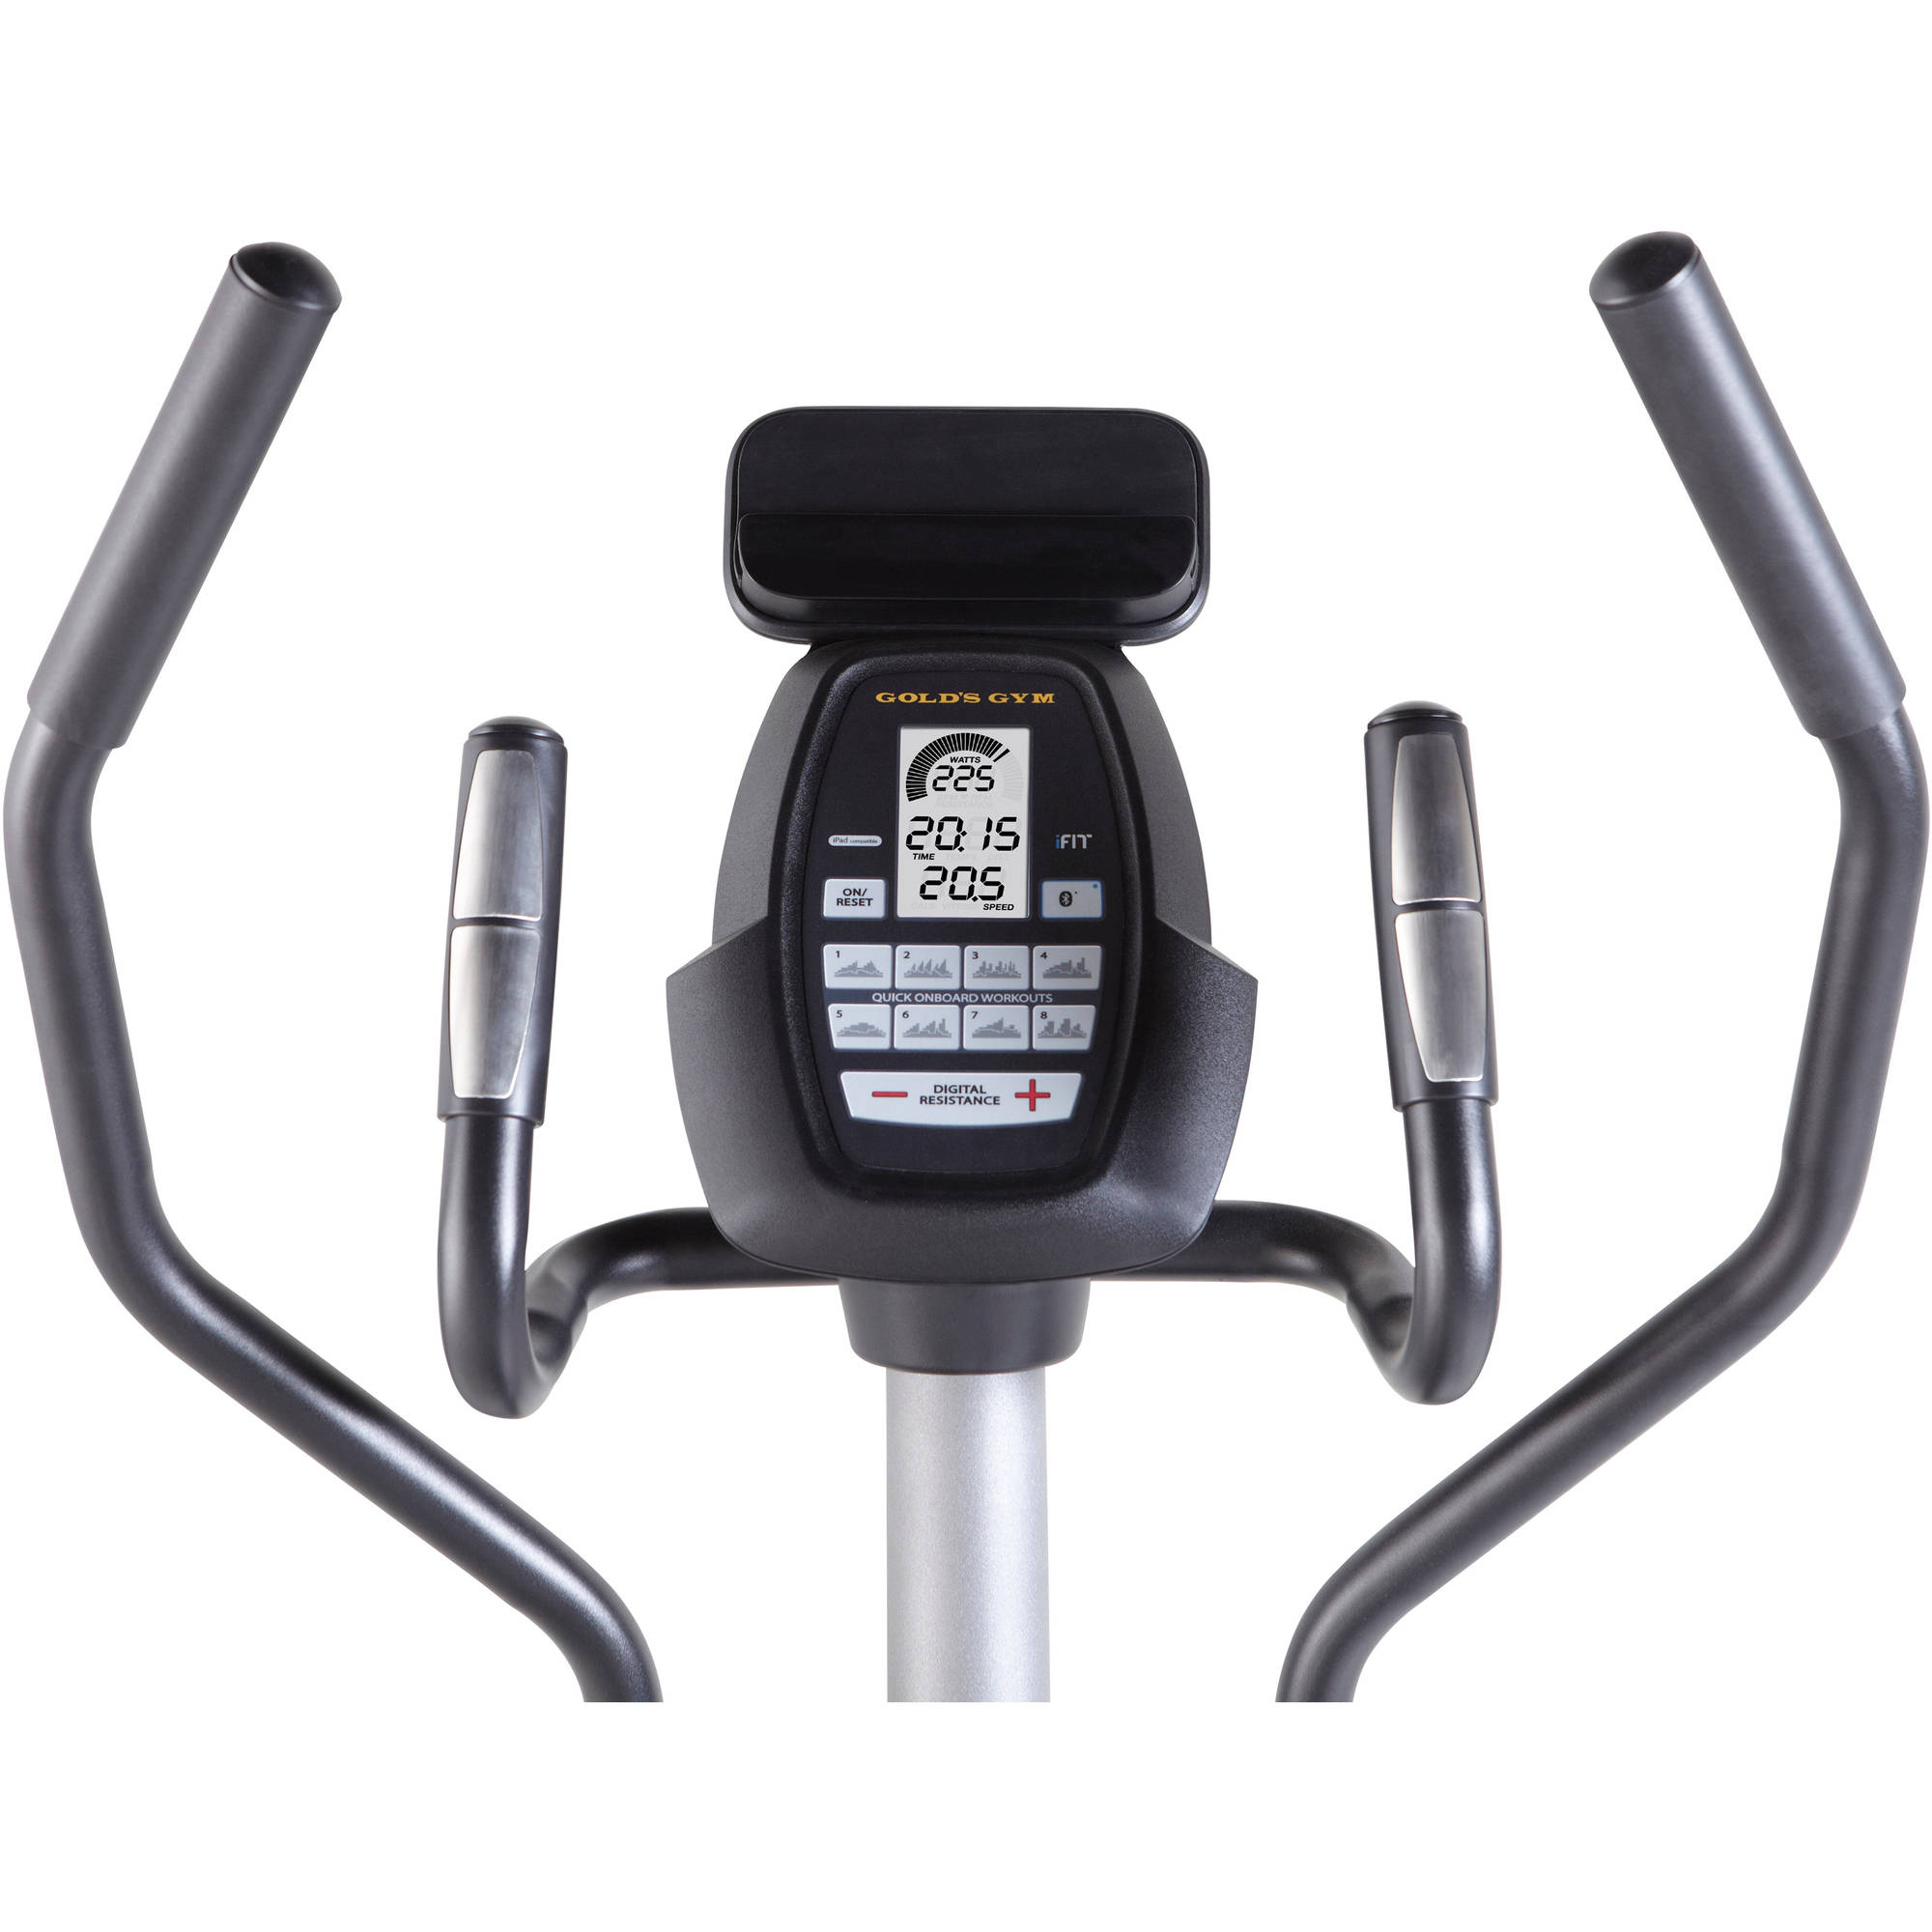 Gold's Gym Stride Trainer 350i Elliptical with Tablet Holder - Walmart.com